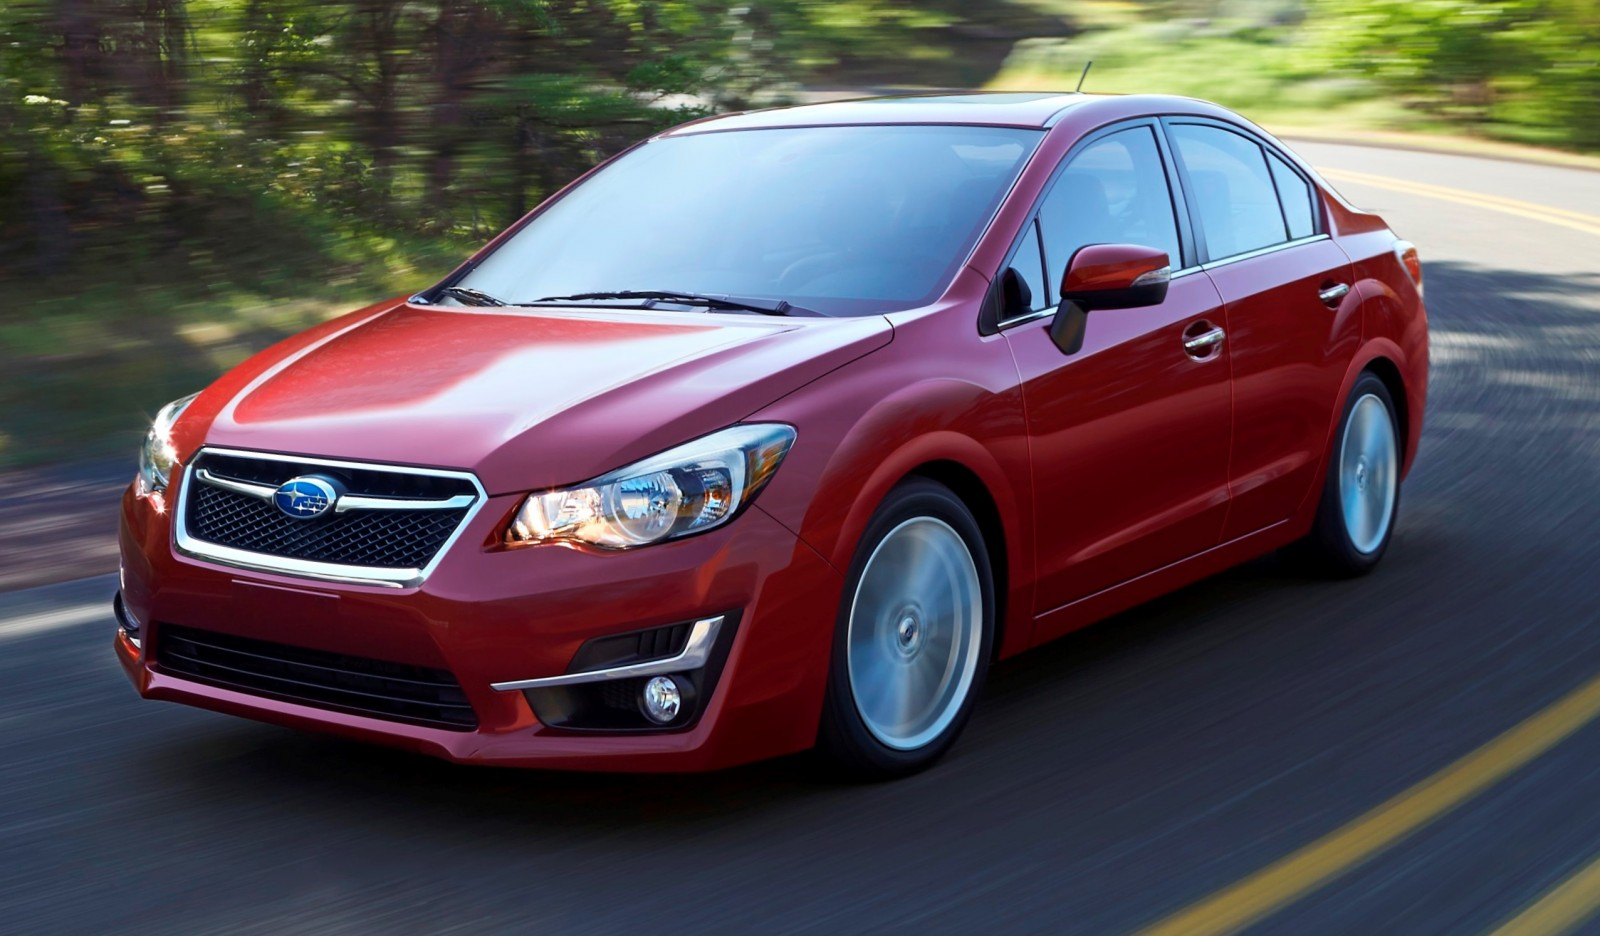 2015 Subaru Impreza Brings Fresh Nose Design, New Lighting and Refined Interior Details 4